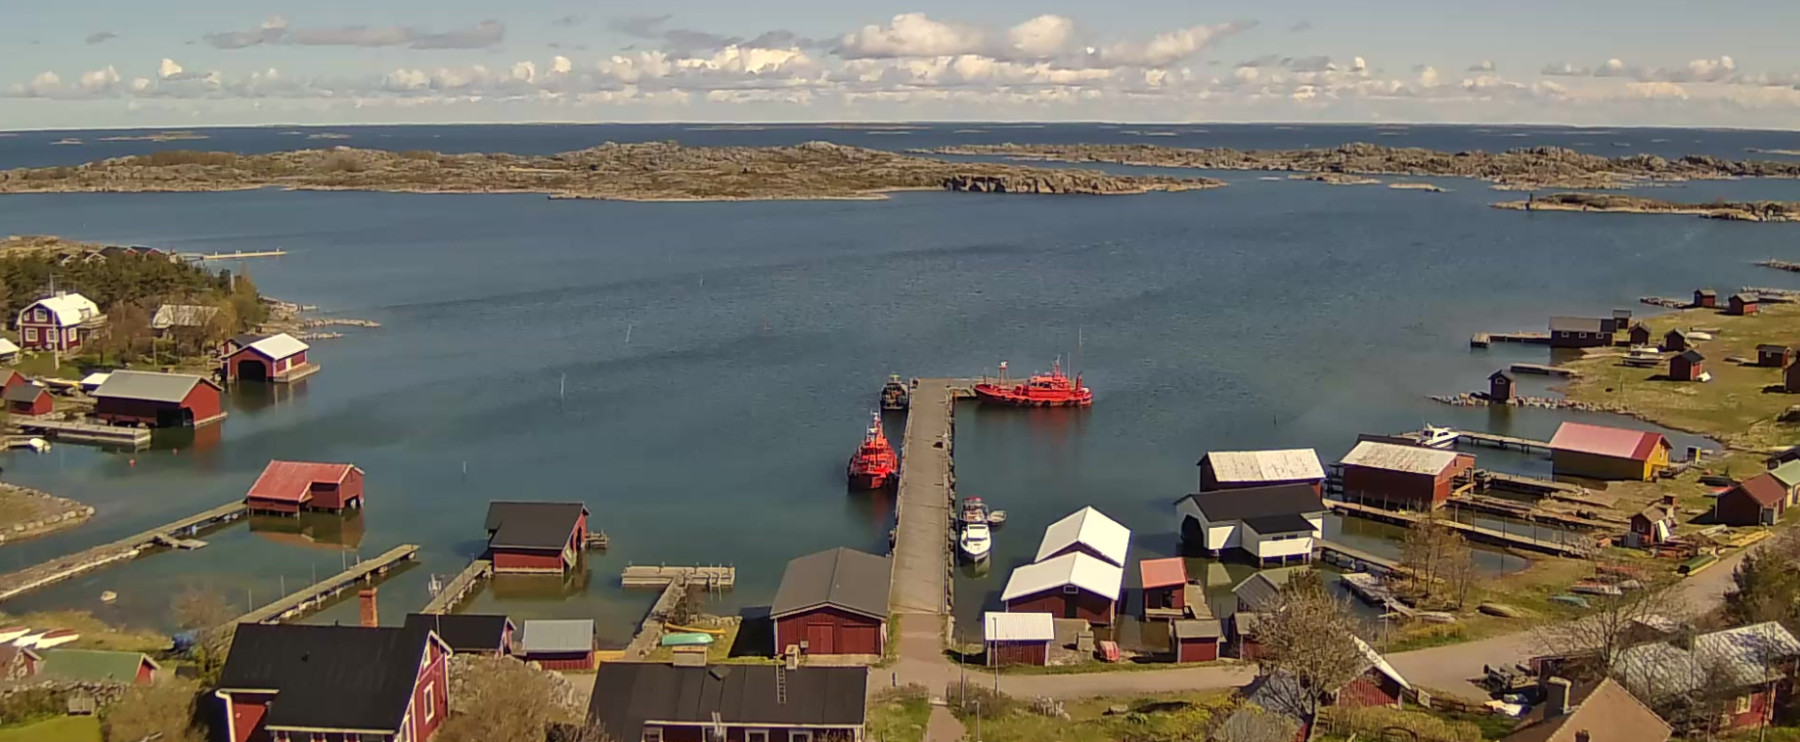 A screenshot of a webcam image showing the ocean harbour of Utö Island with small cabins and boats.